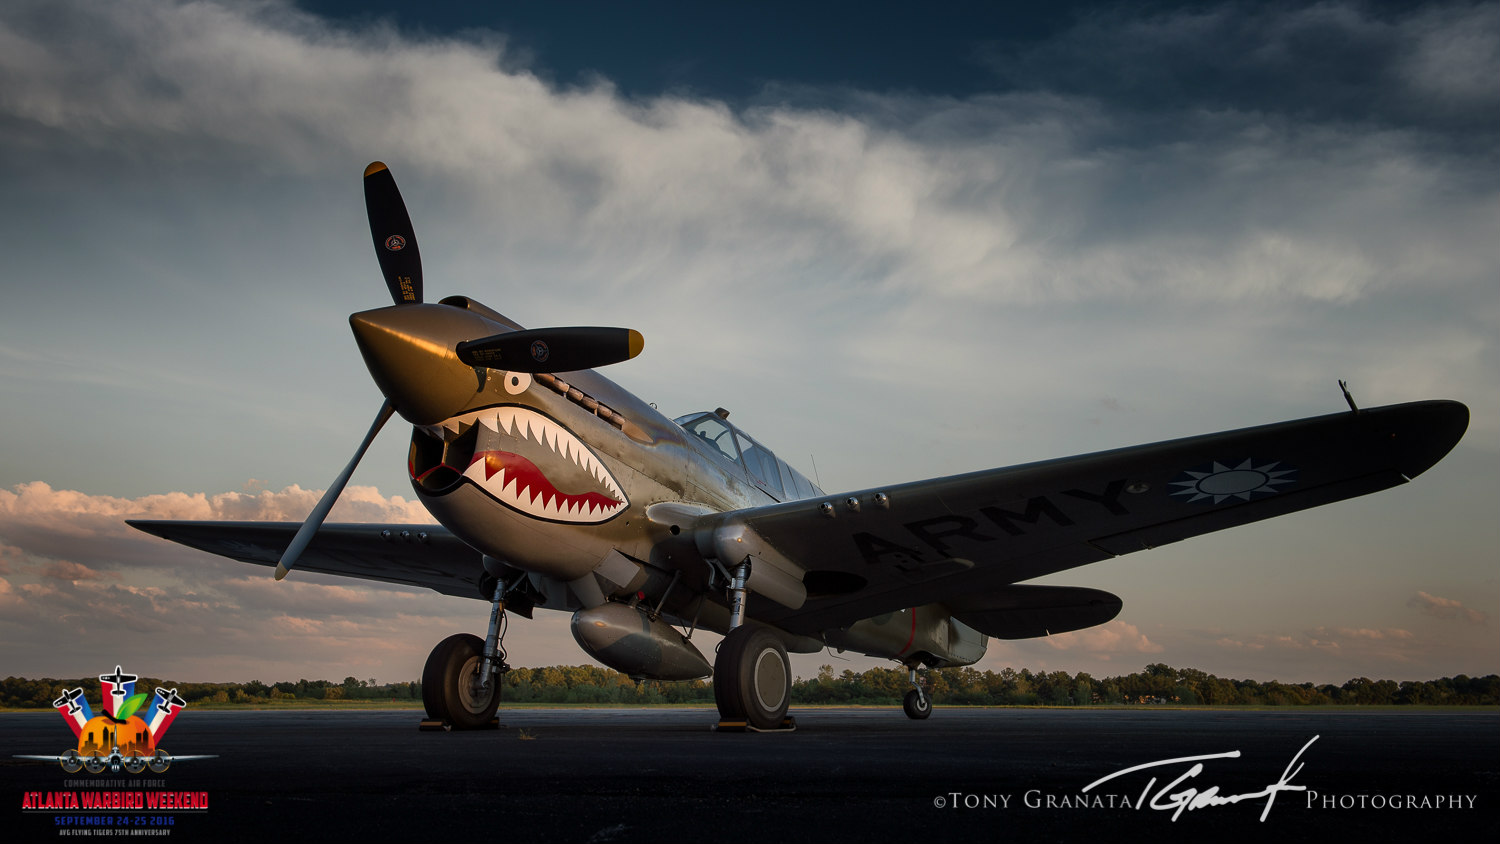 Military Aviation Museum P-40 Warhawk on the ramp of Dekalb Peachtree City Airport for the 2015 Atlanta Warbird Weekend. Photo by Tony Granata Photography.